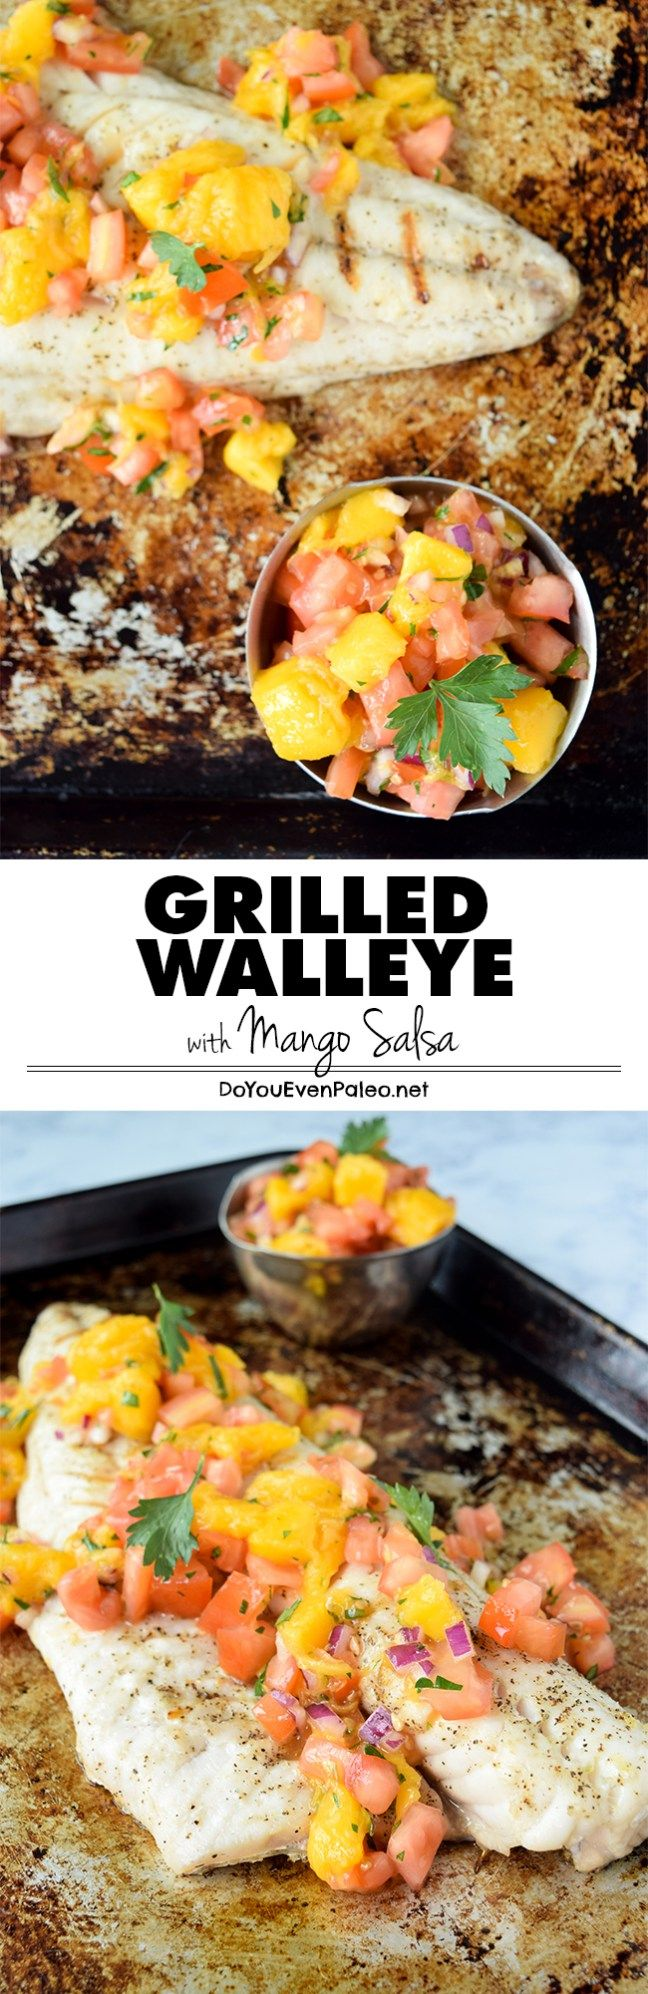 A simple recipe for grilled walleye topped with mango salsa - the flavors of summer, on the dinner table in less than 30 minutes! | DoYouEvenPaleo.net  #paleo #glutenfree #doyouevenpaleo #whole30